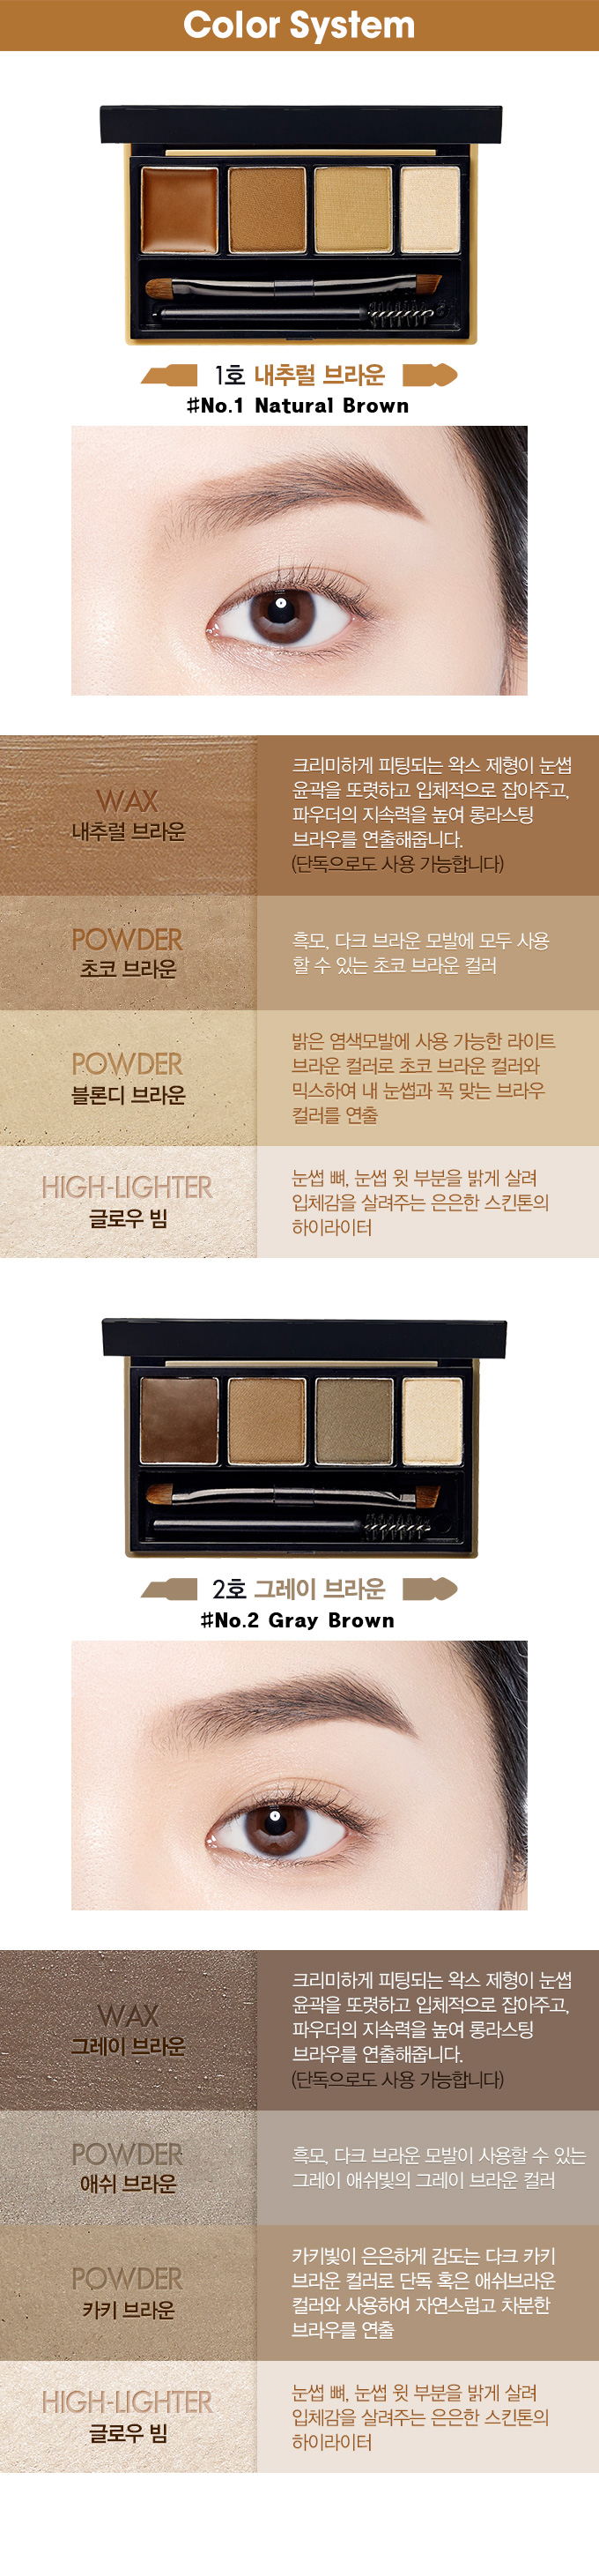 etude-house-brow-contouring-kit-3.8g-2.jpg